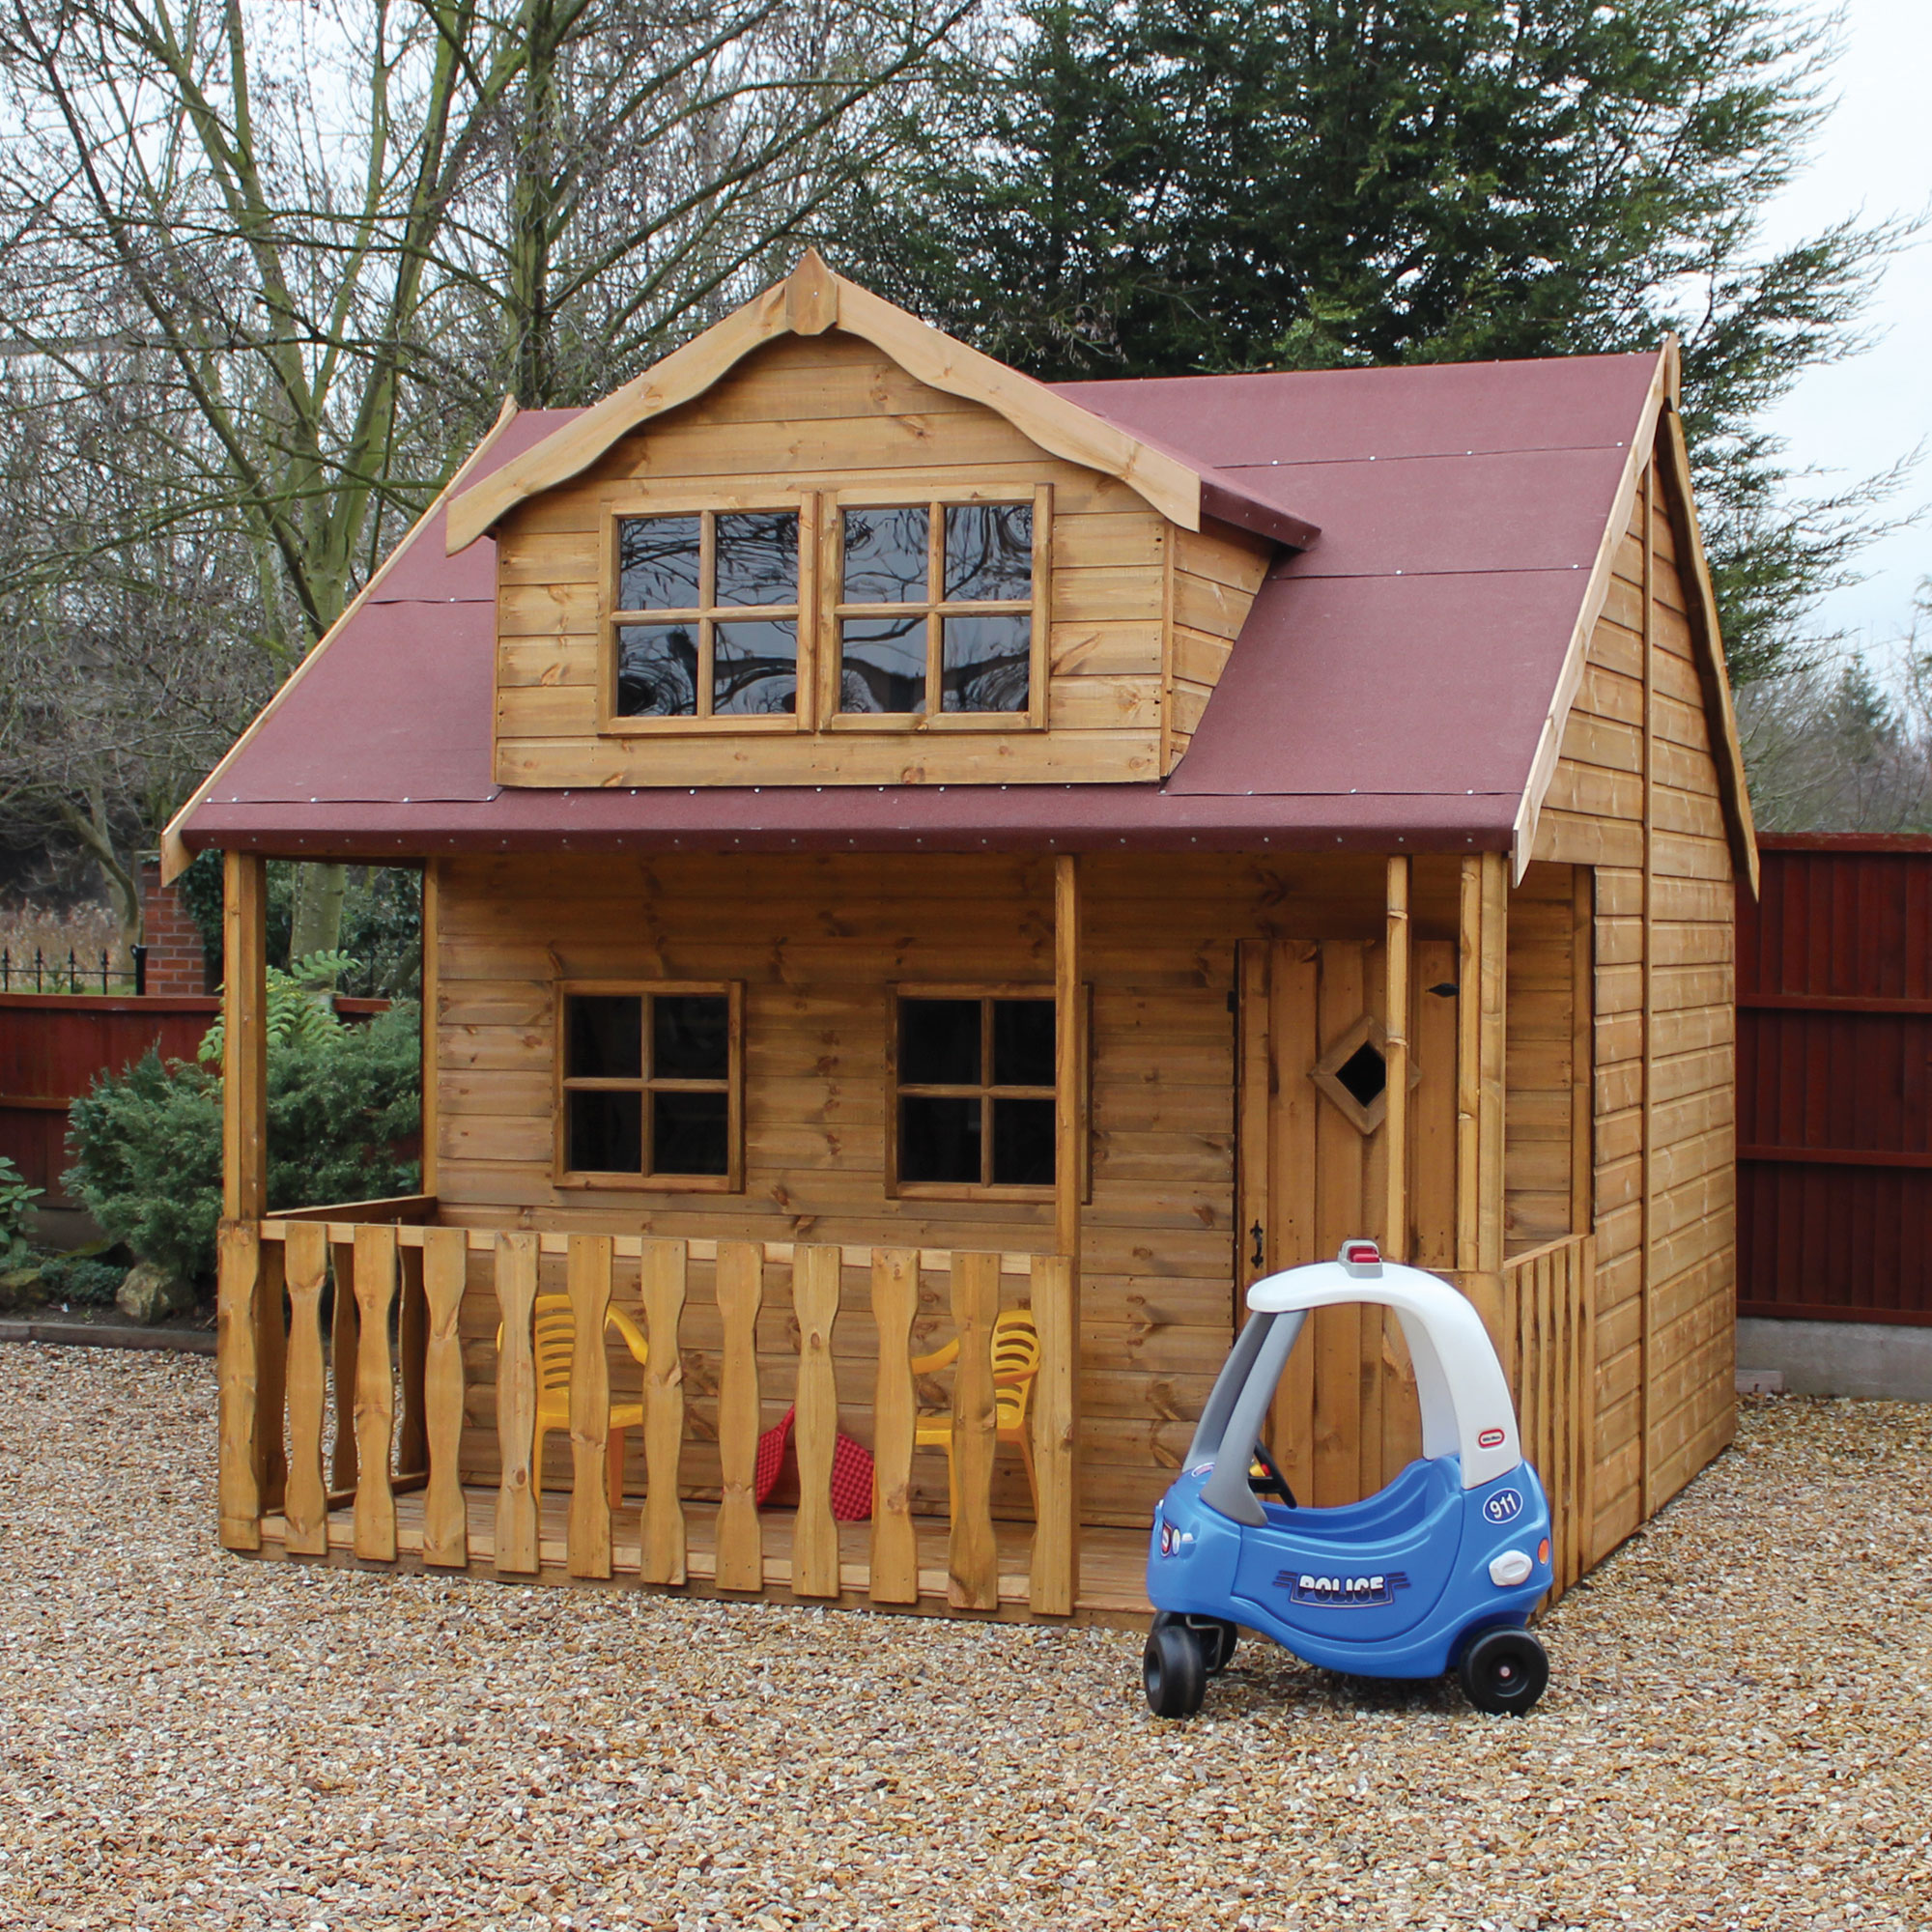 Image of 10' x 10' (3.05x3.05m)Traditional Swiss Cottage Childrens/ Kids Wooden Garden Playhouse